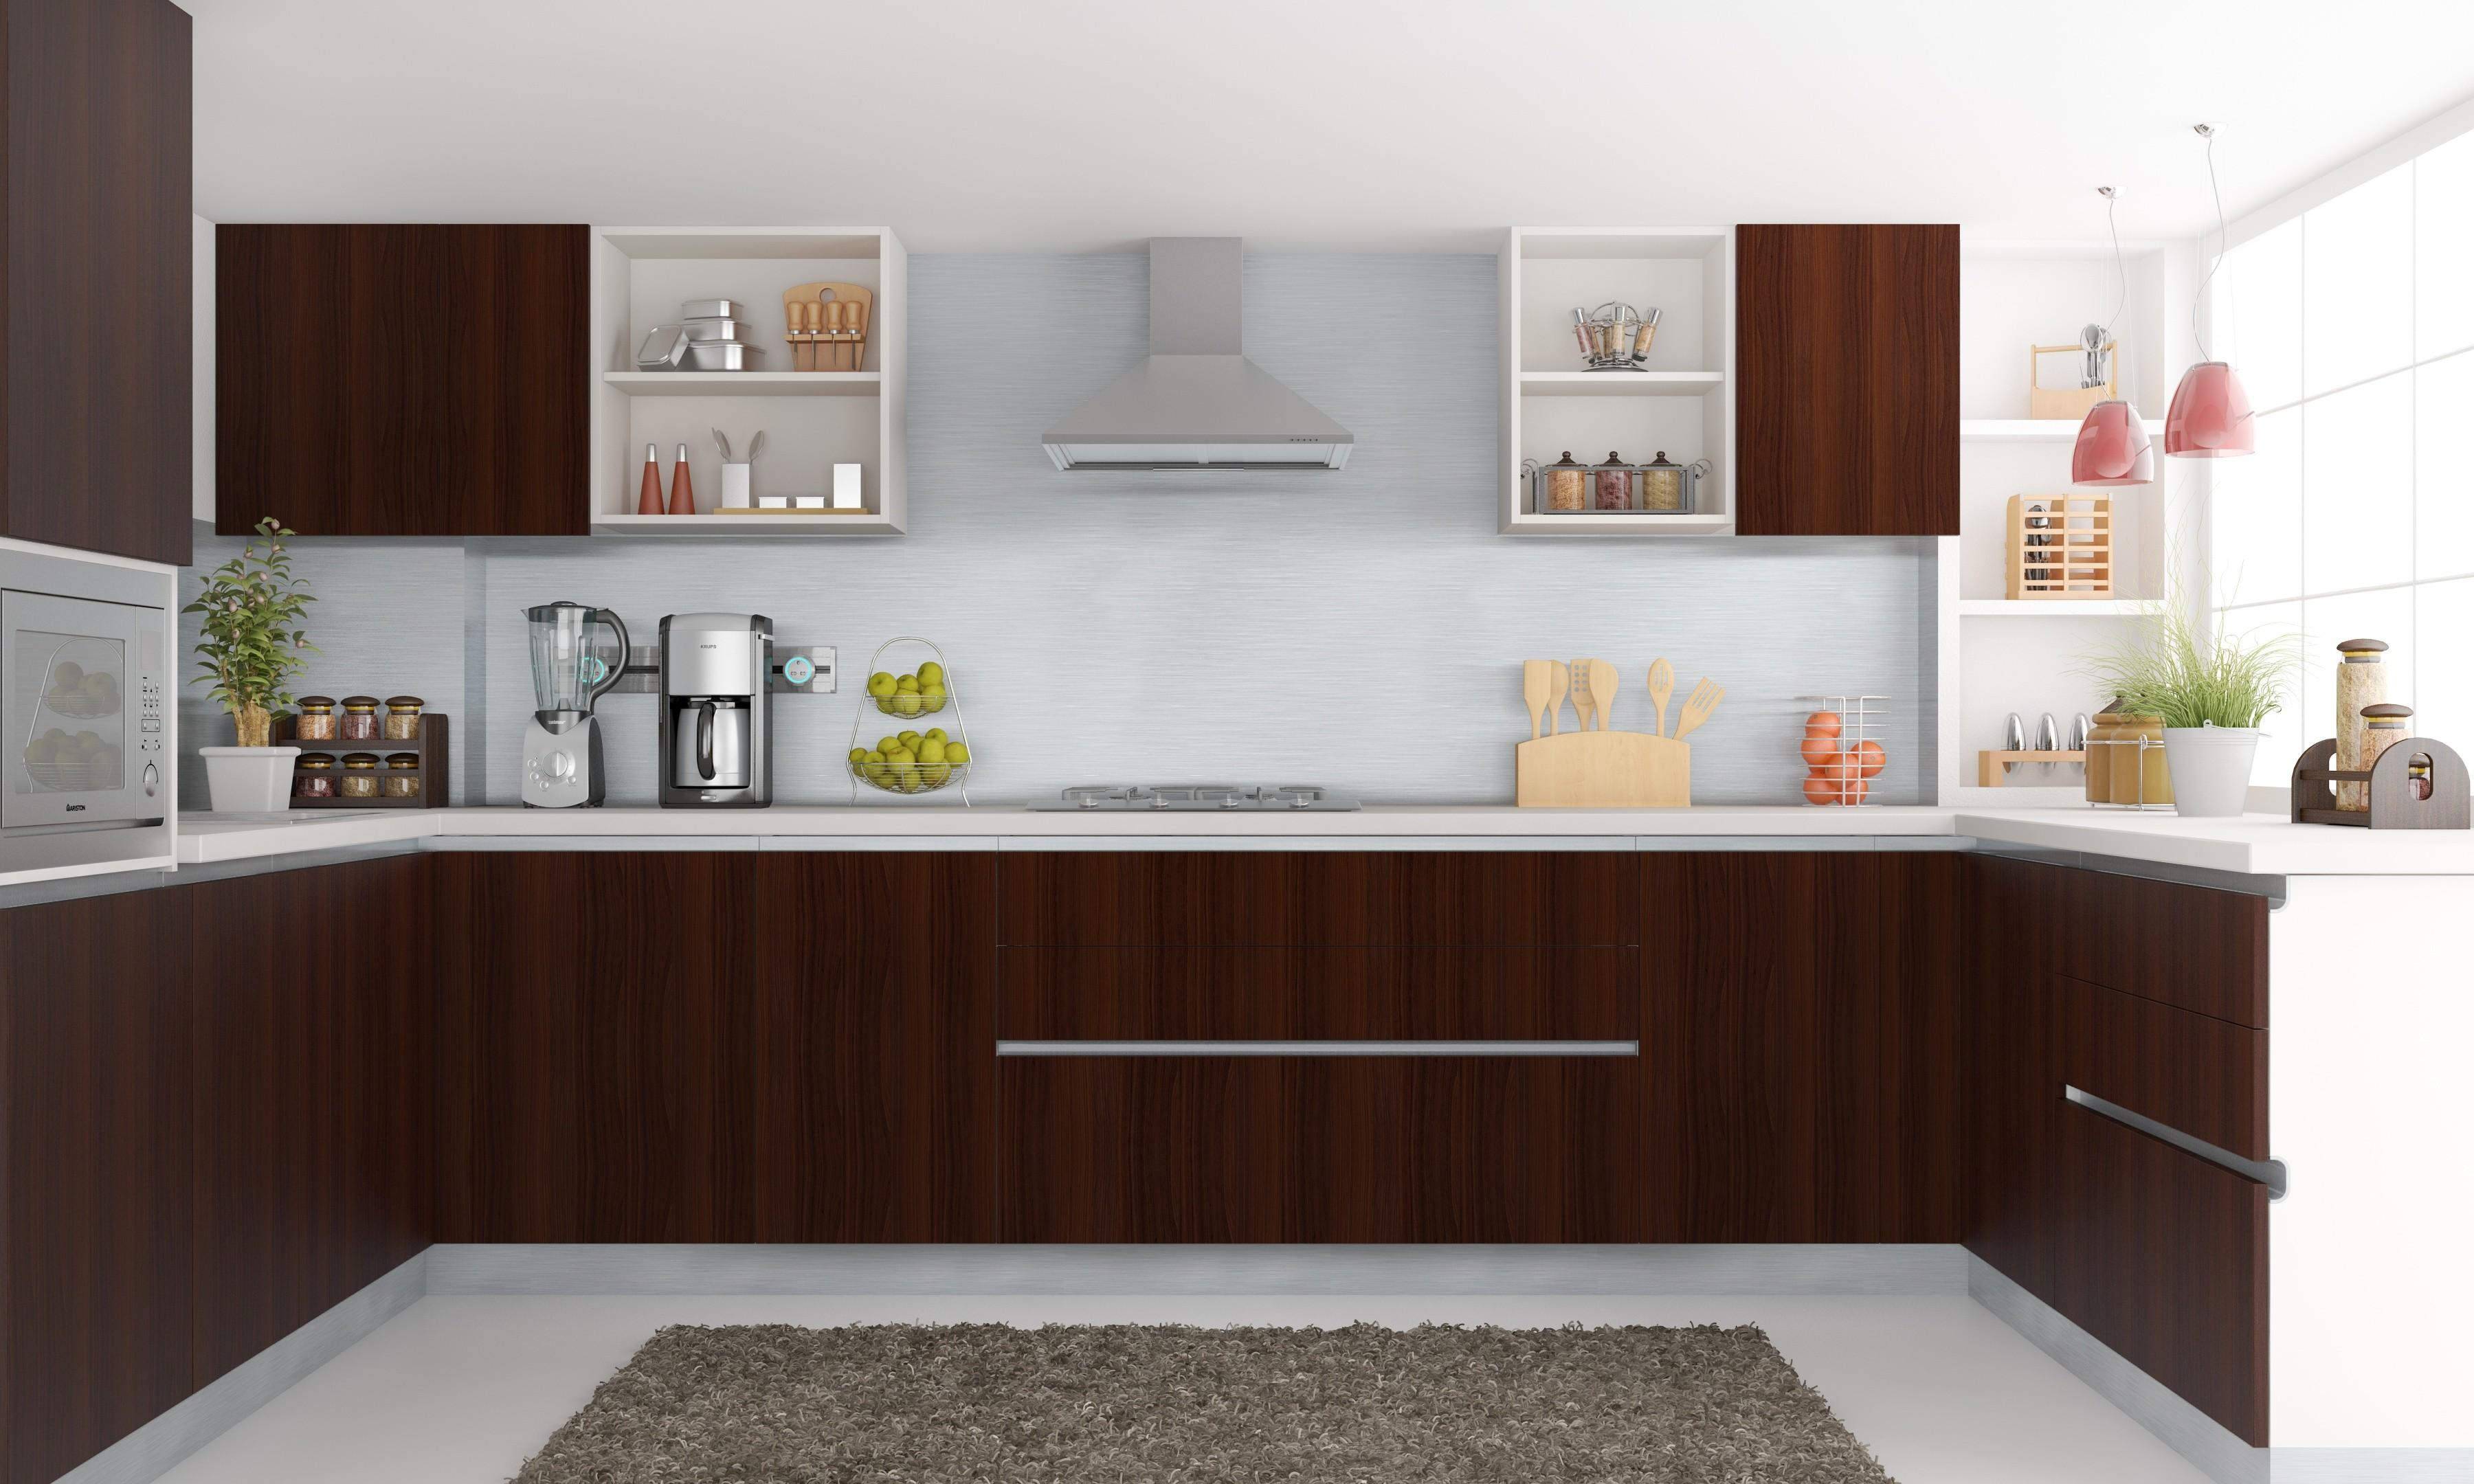 Modular Kitchen Wall Cabinets Design Ideas